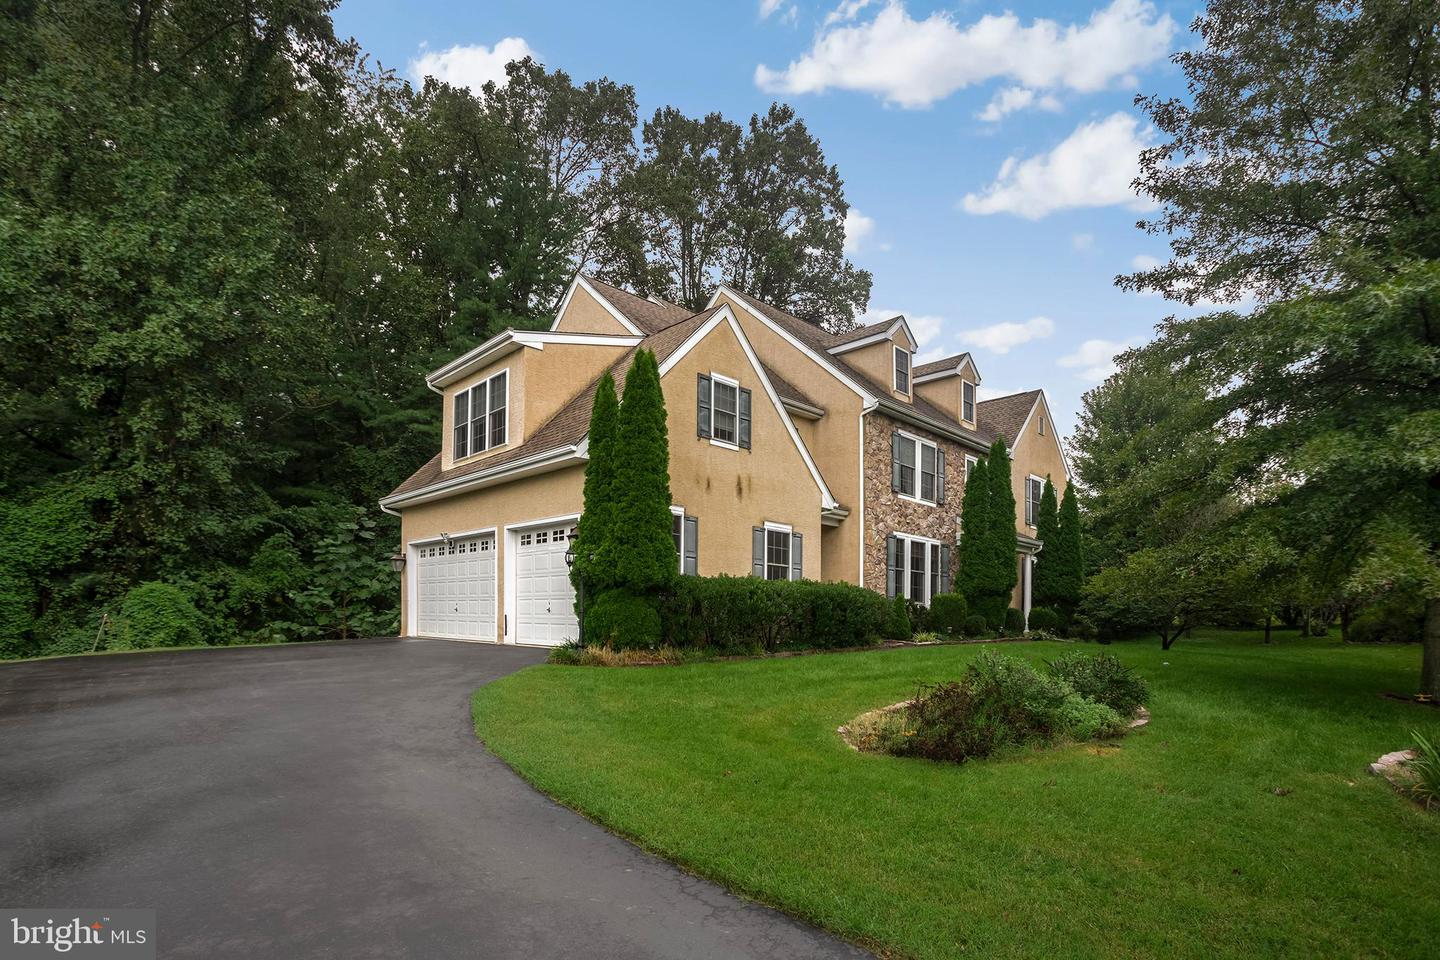 20 Kimberly Way Broomall, PA 19008